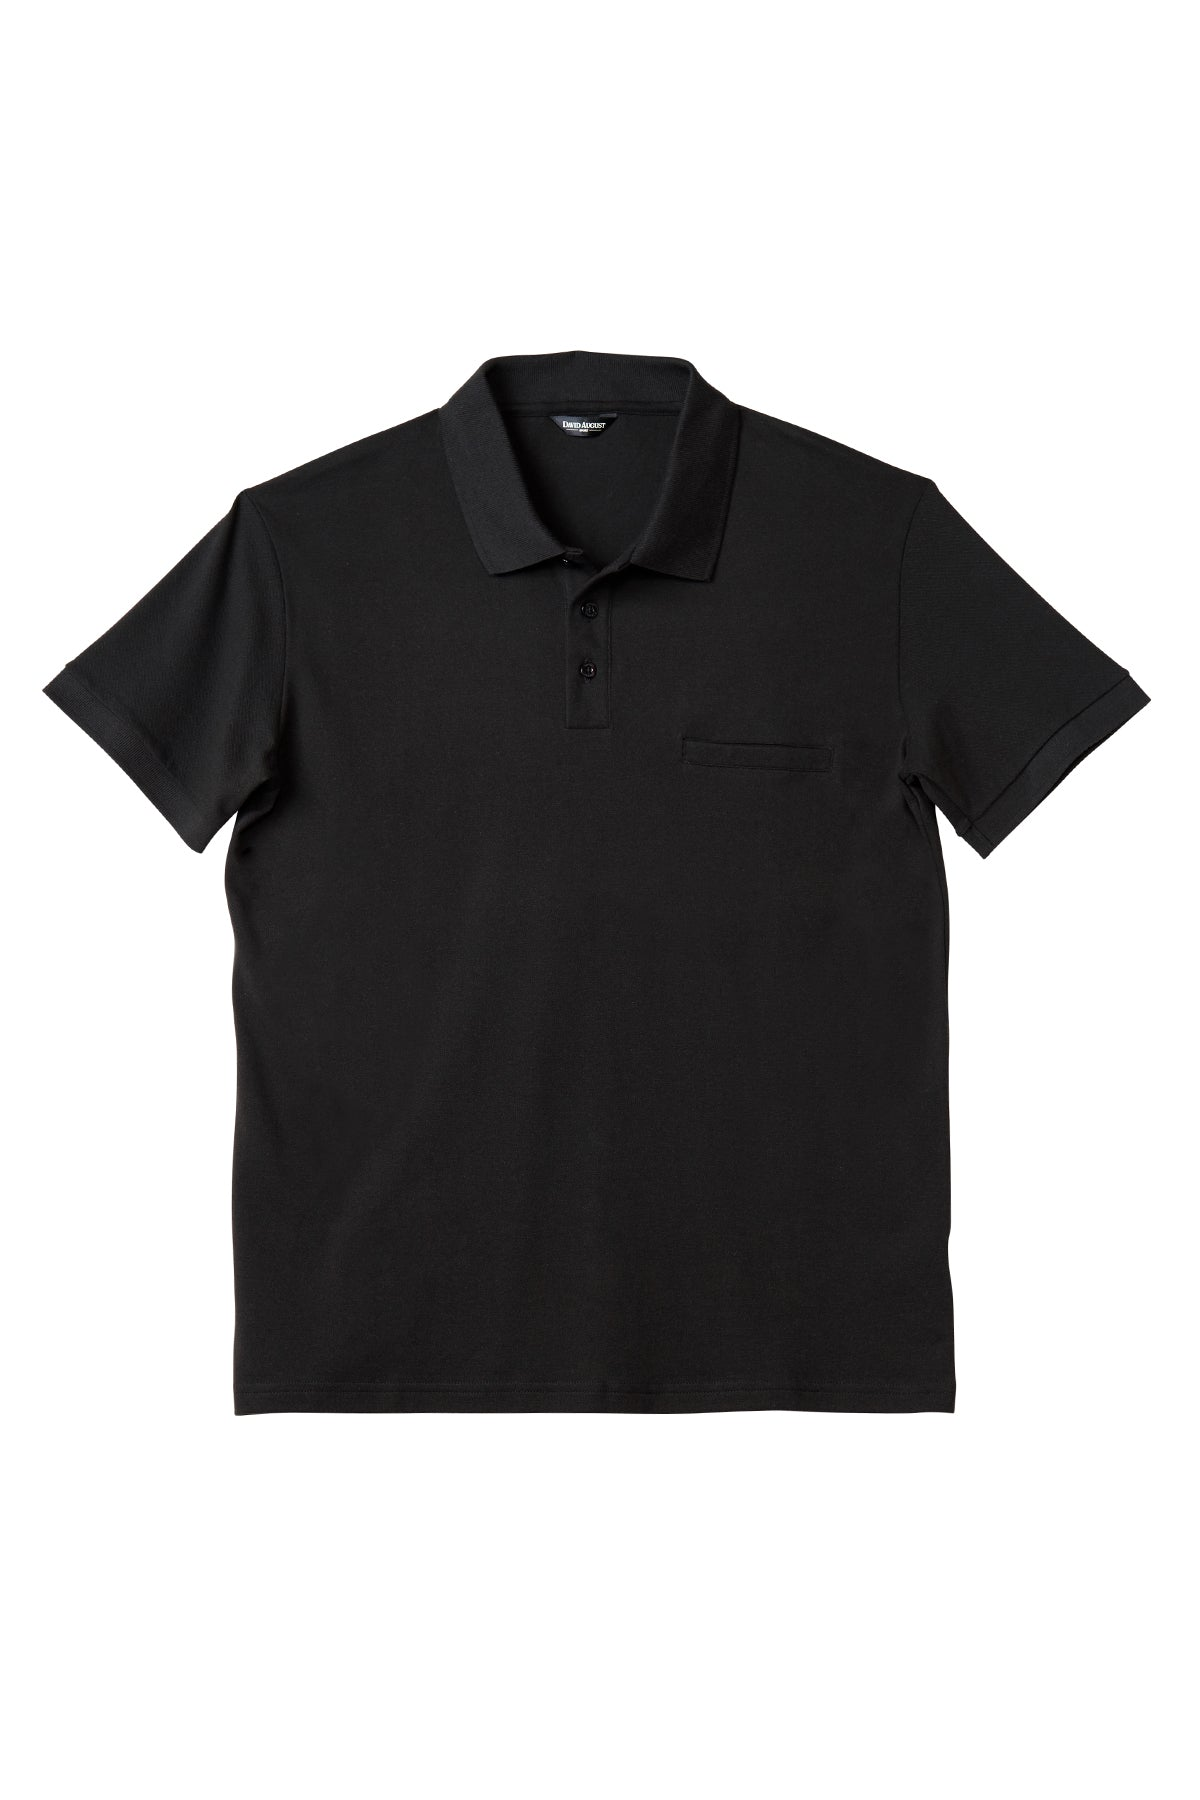 Luxury Pima Pique Cotton Polo in Black